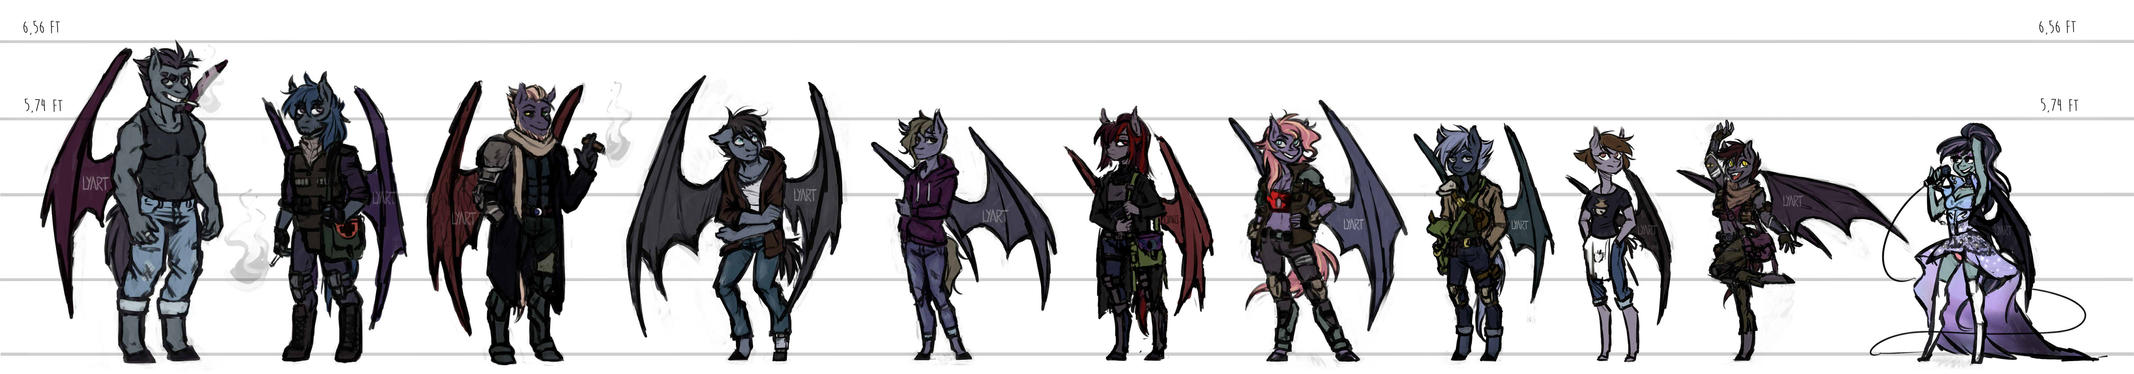 height reference by BjsX